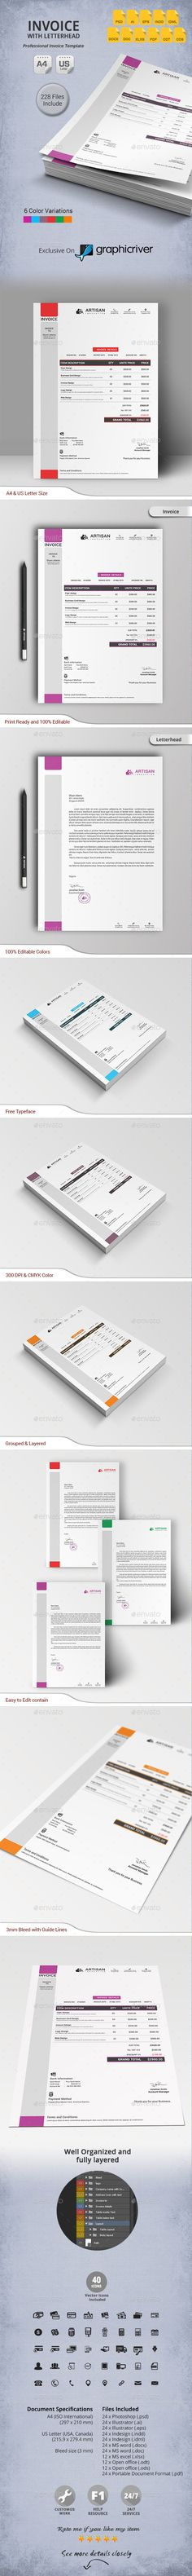 Invoice with Letterhead Template #print #design Download: http://graphicriver.net/item/invoice-with-letterhead/11031526?ref=ksioks